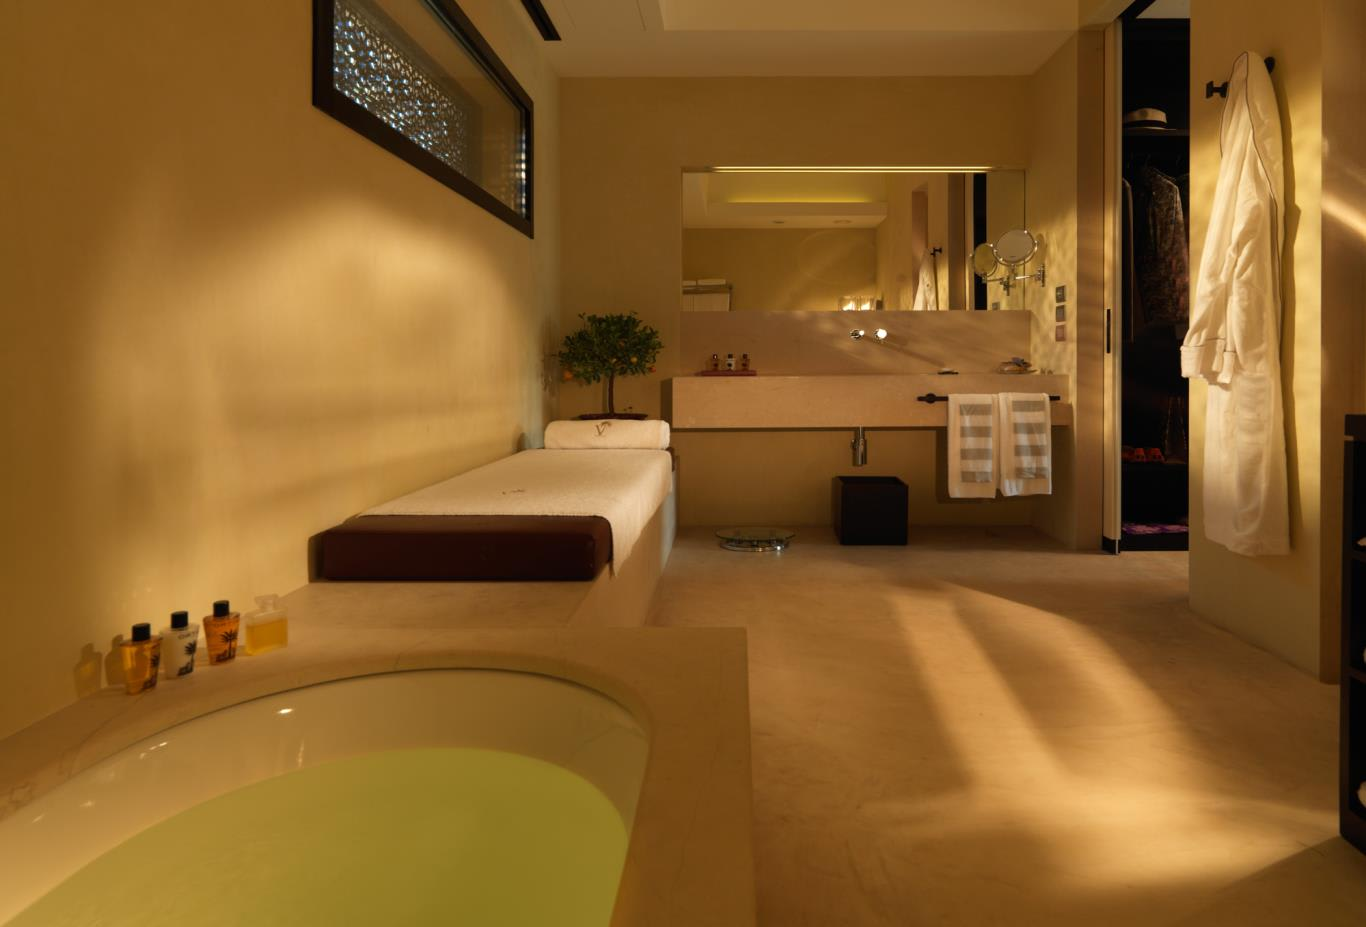 Deluxe Room bathroom space